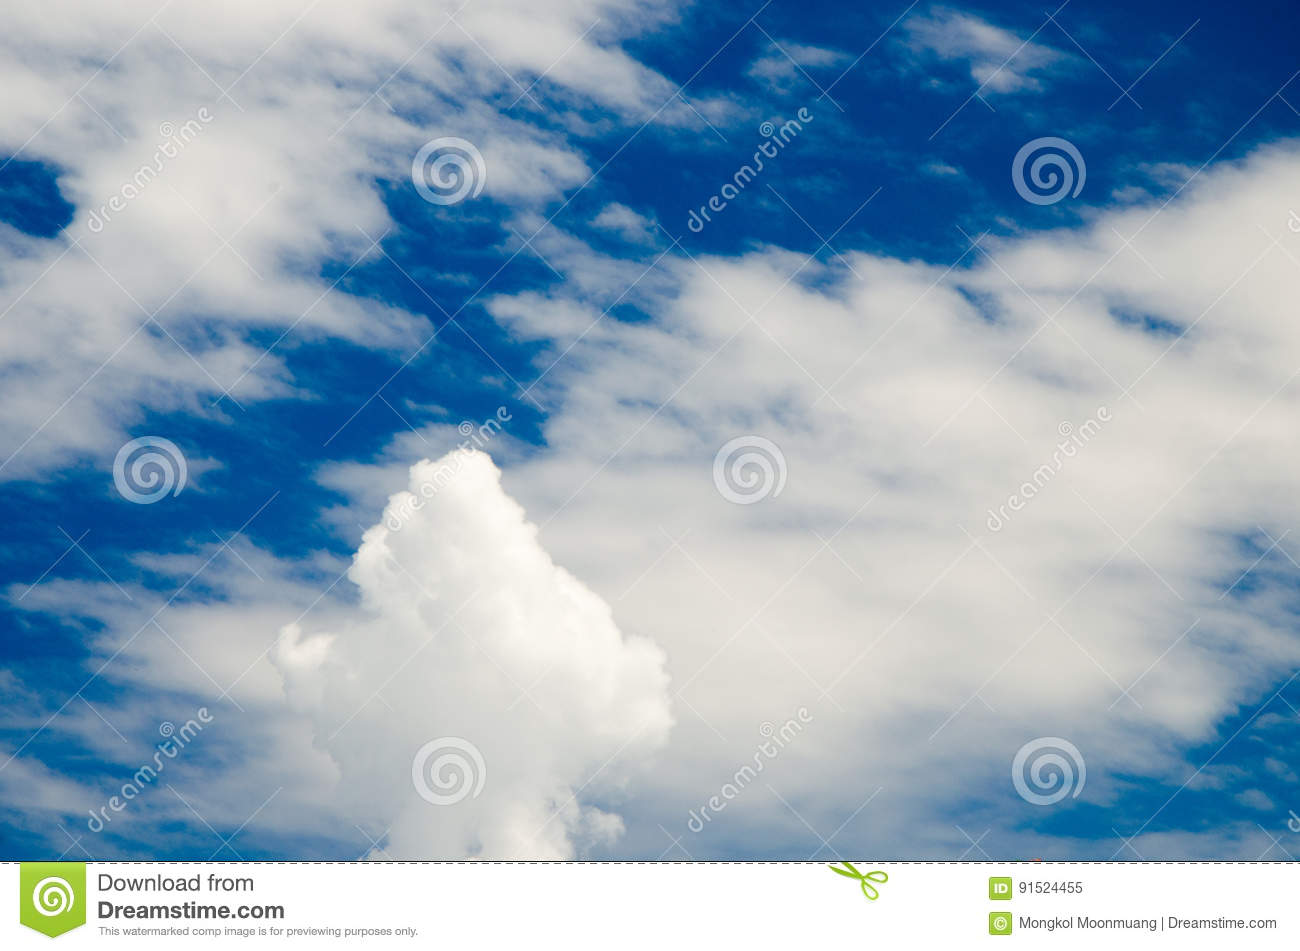 Clouds and deep blue sky